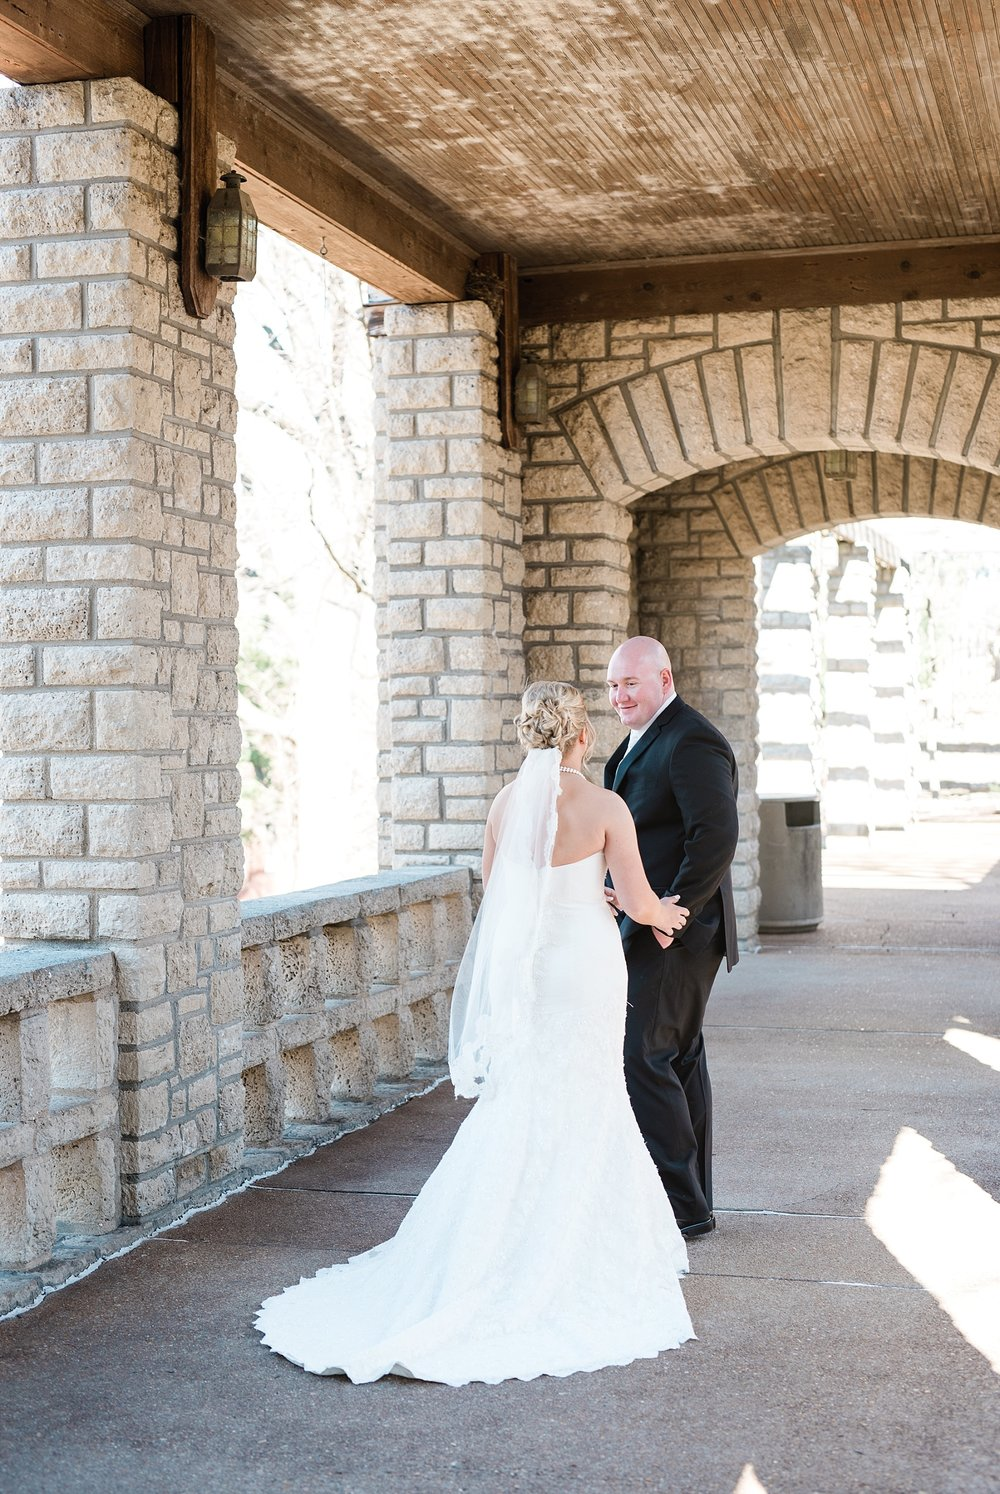 Light and Airy Spring Wedding Downtown Jefferson City Missouri State Capitol Millbottom_0007.jpg